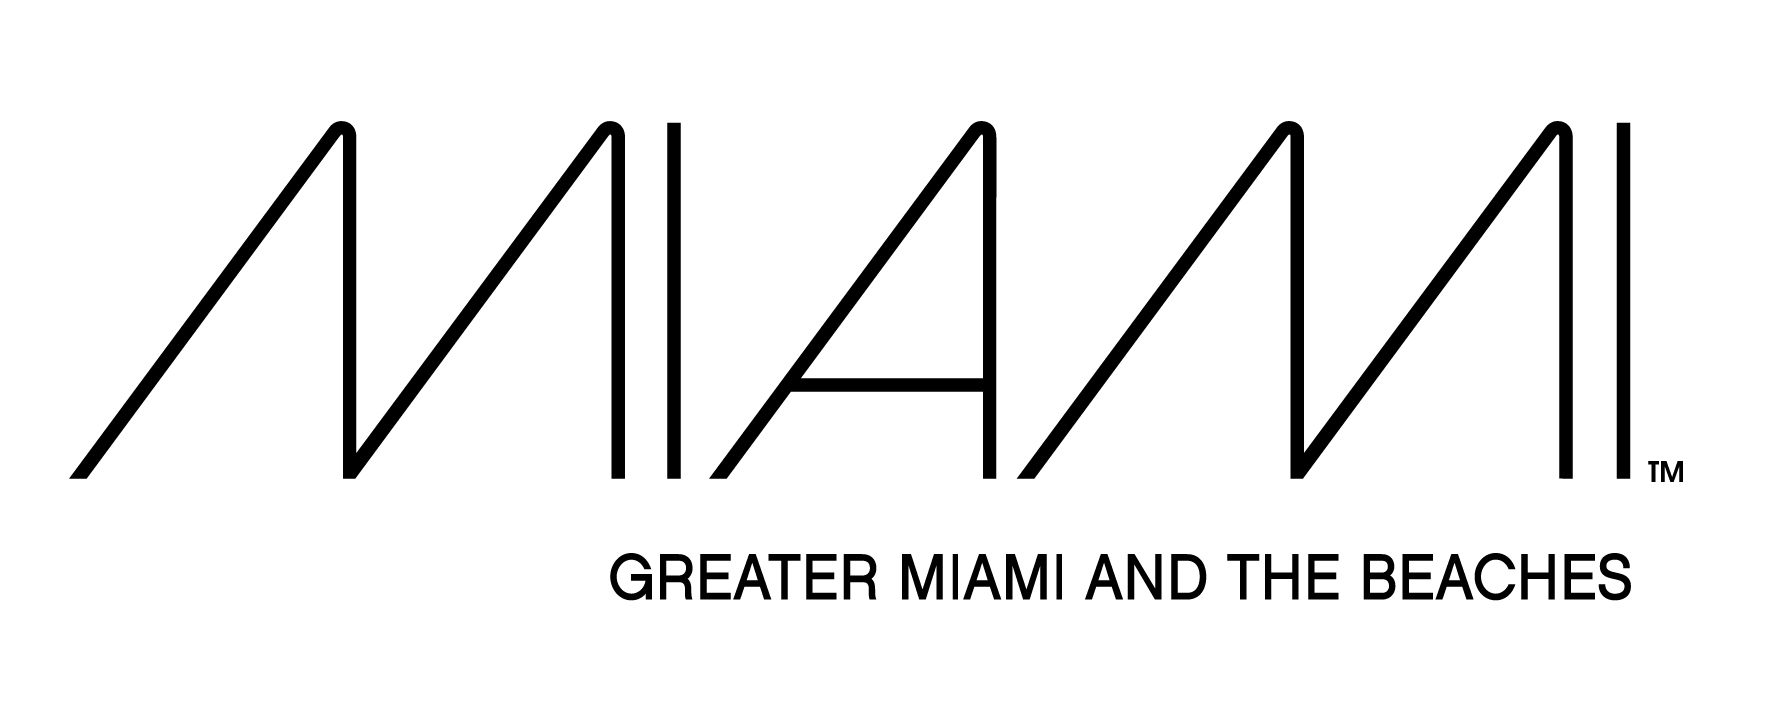 miami_greatermiami